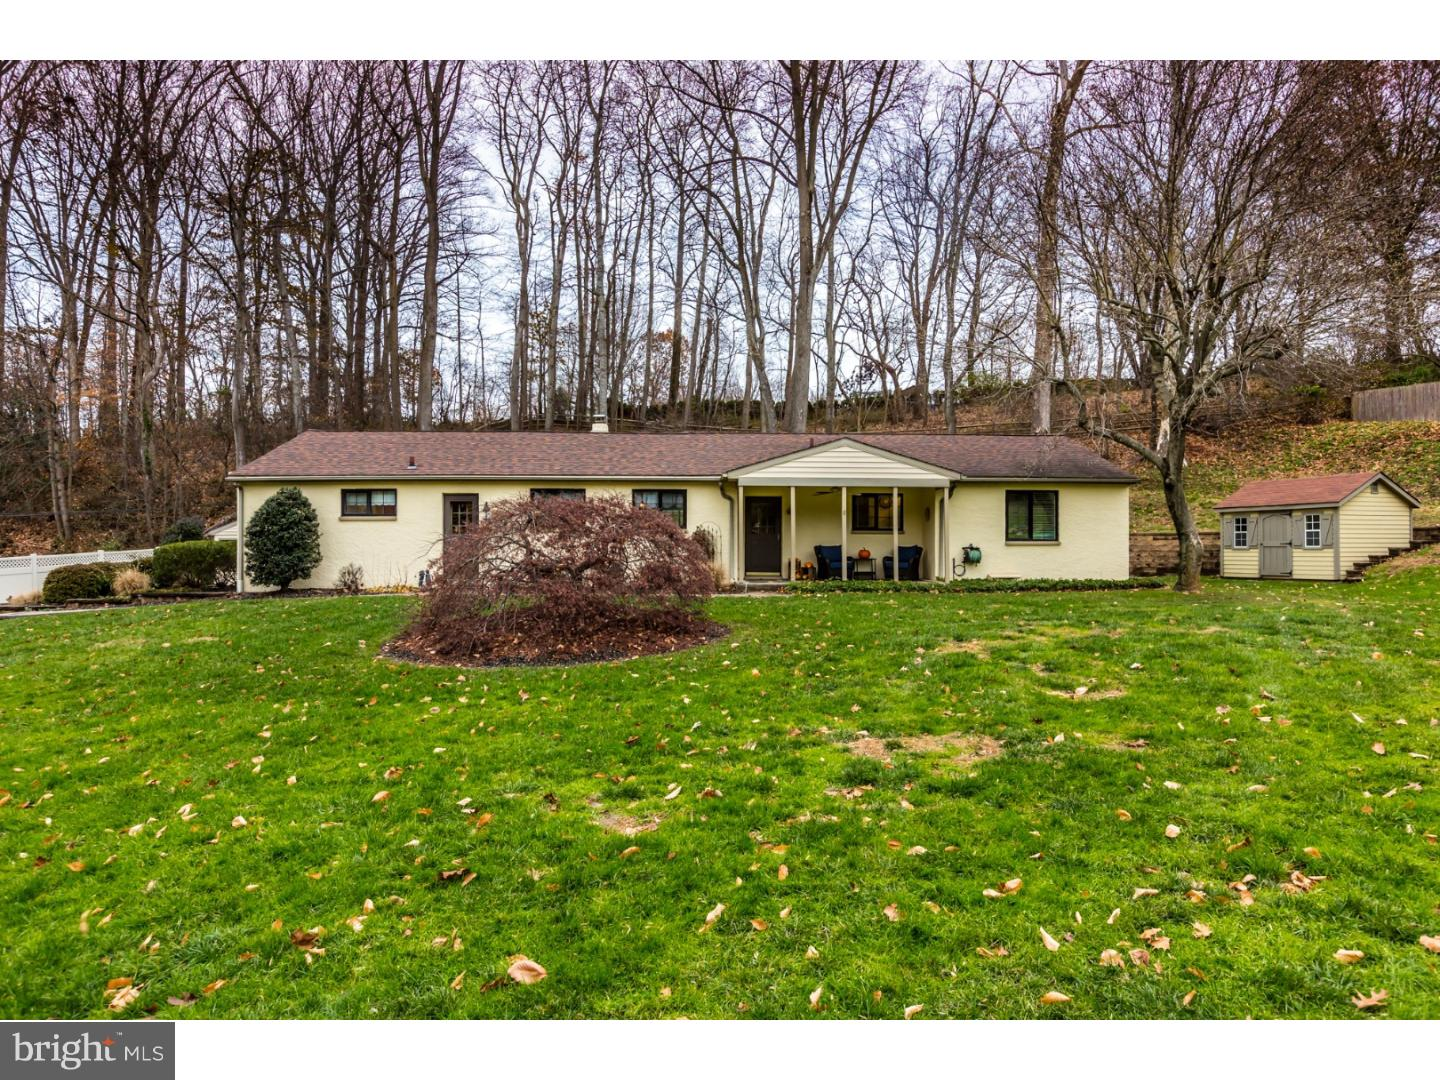 121 N Malin Road Broomall, PA 19008